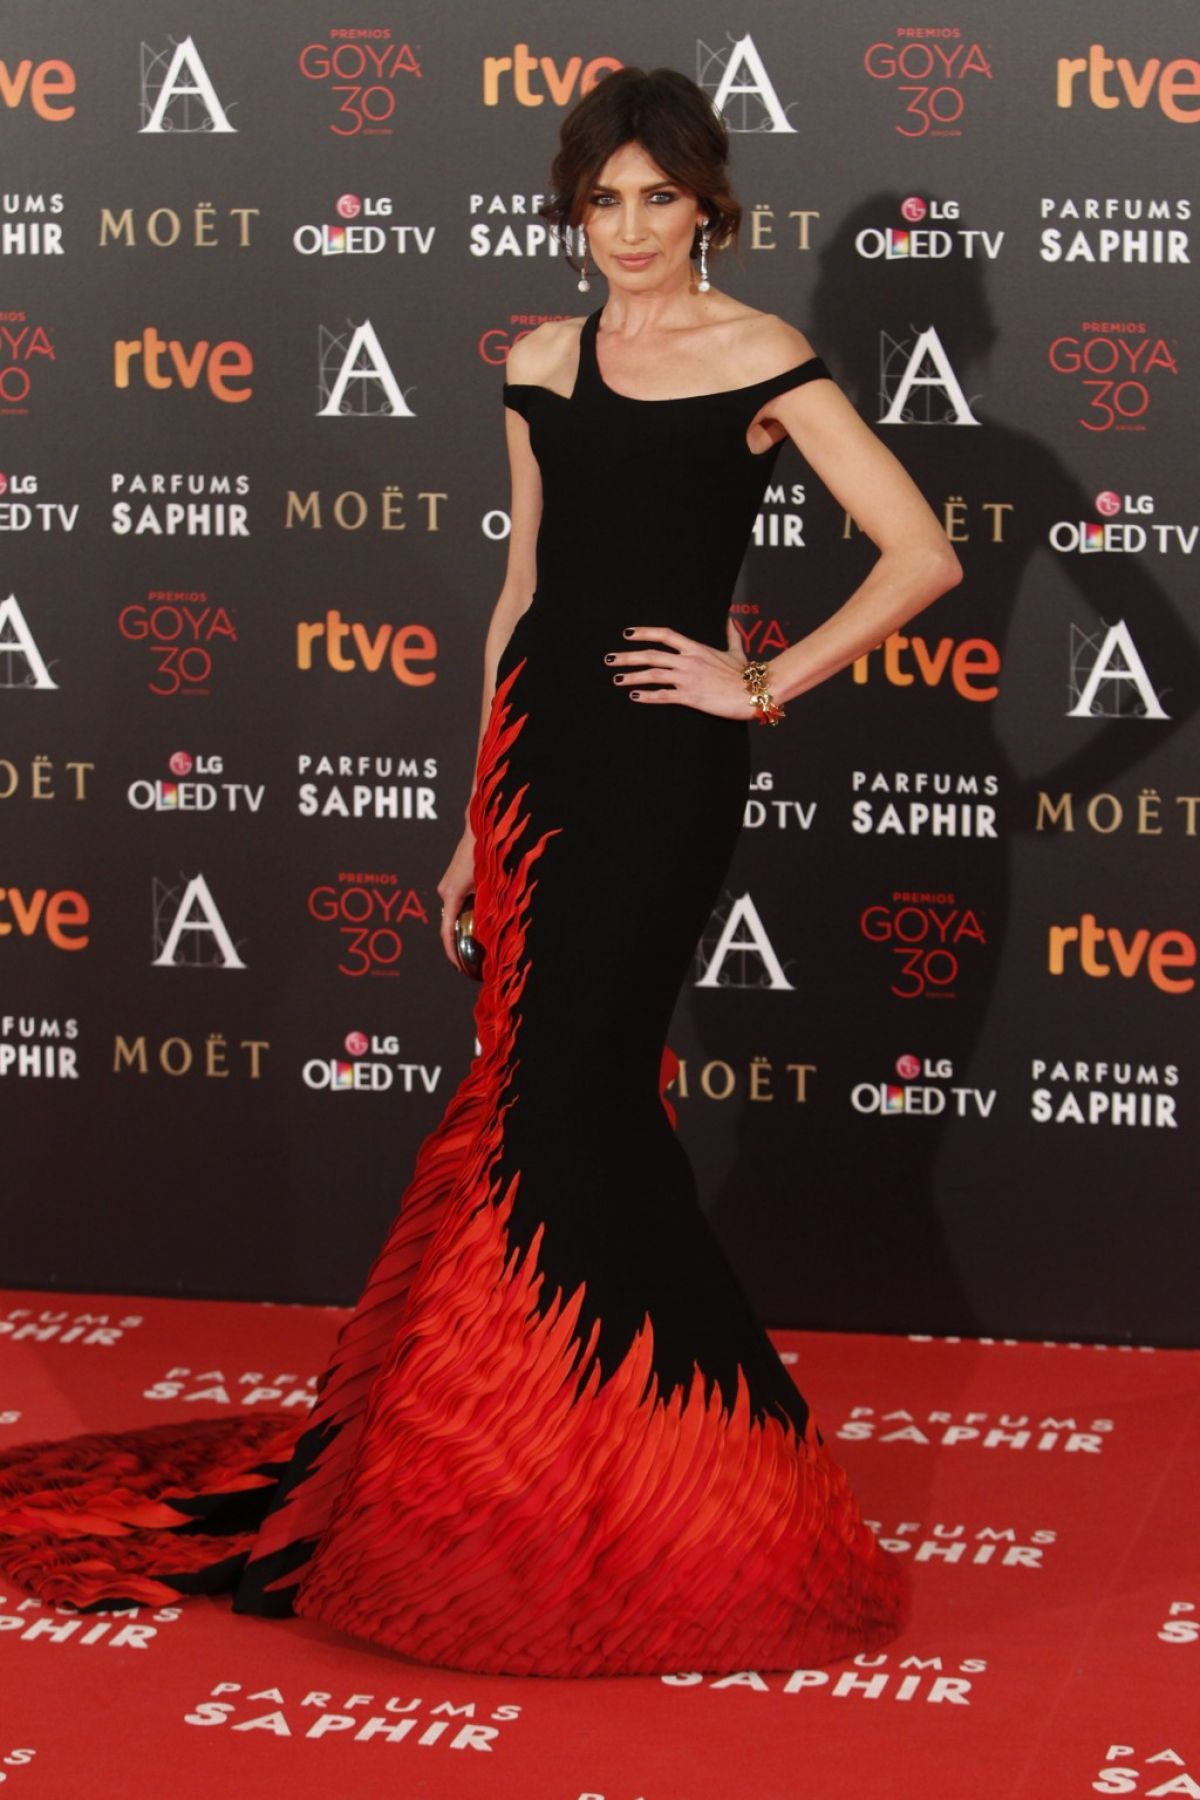 NIEVES ALVAREZ at 30th Annual Goya Film Awards in Madrid 02/06/2016